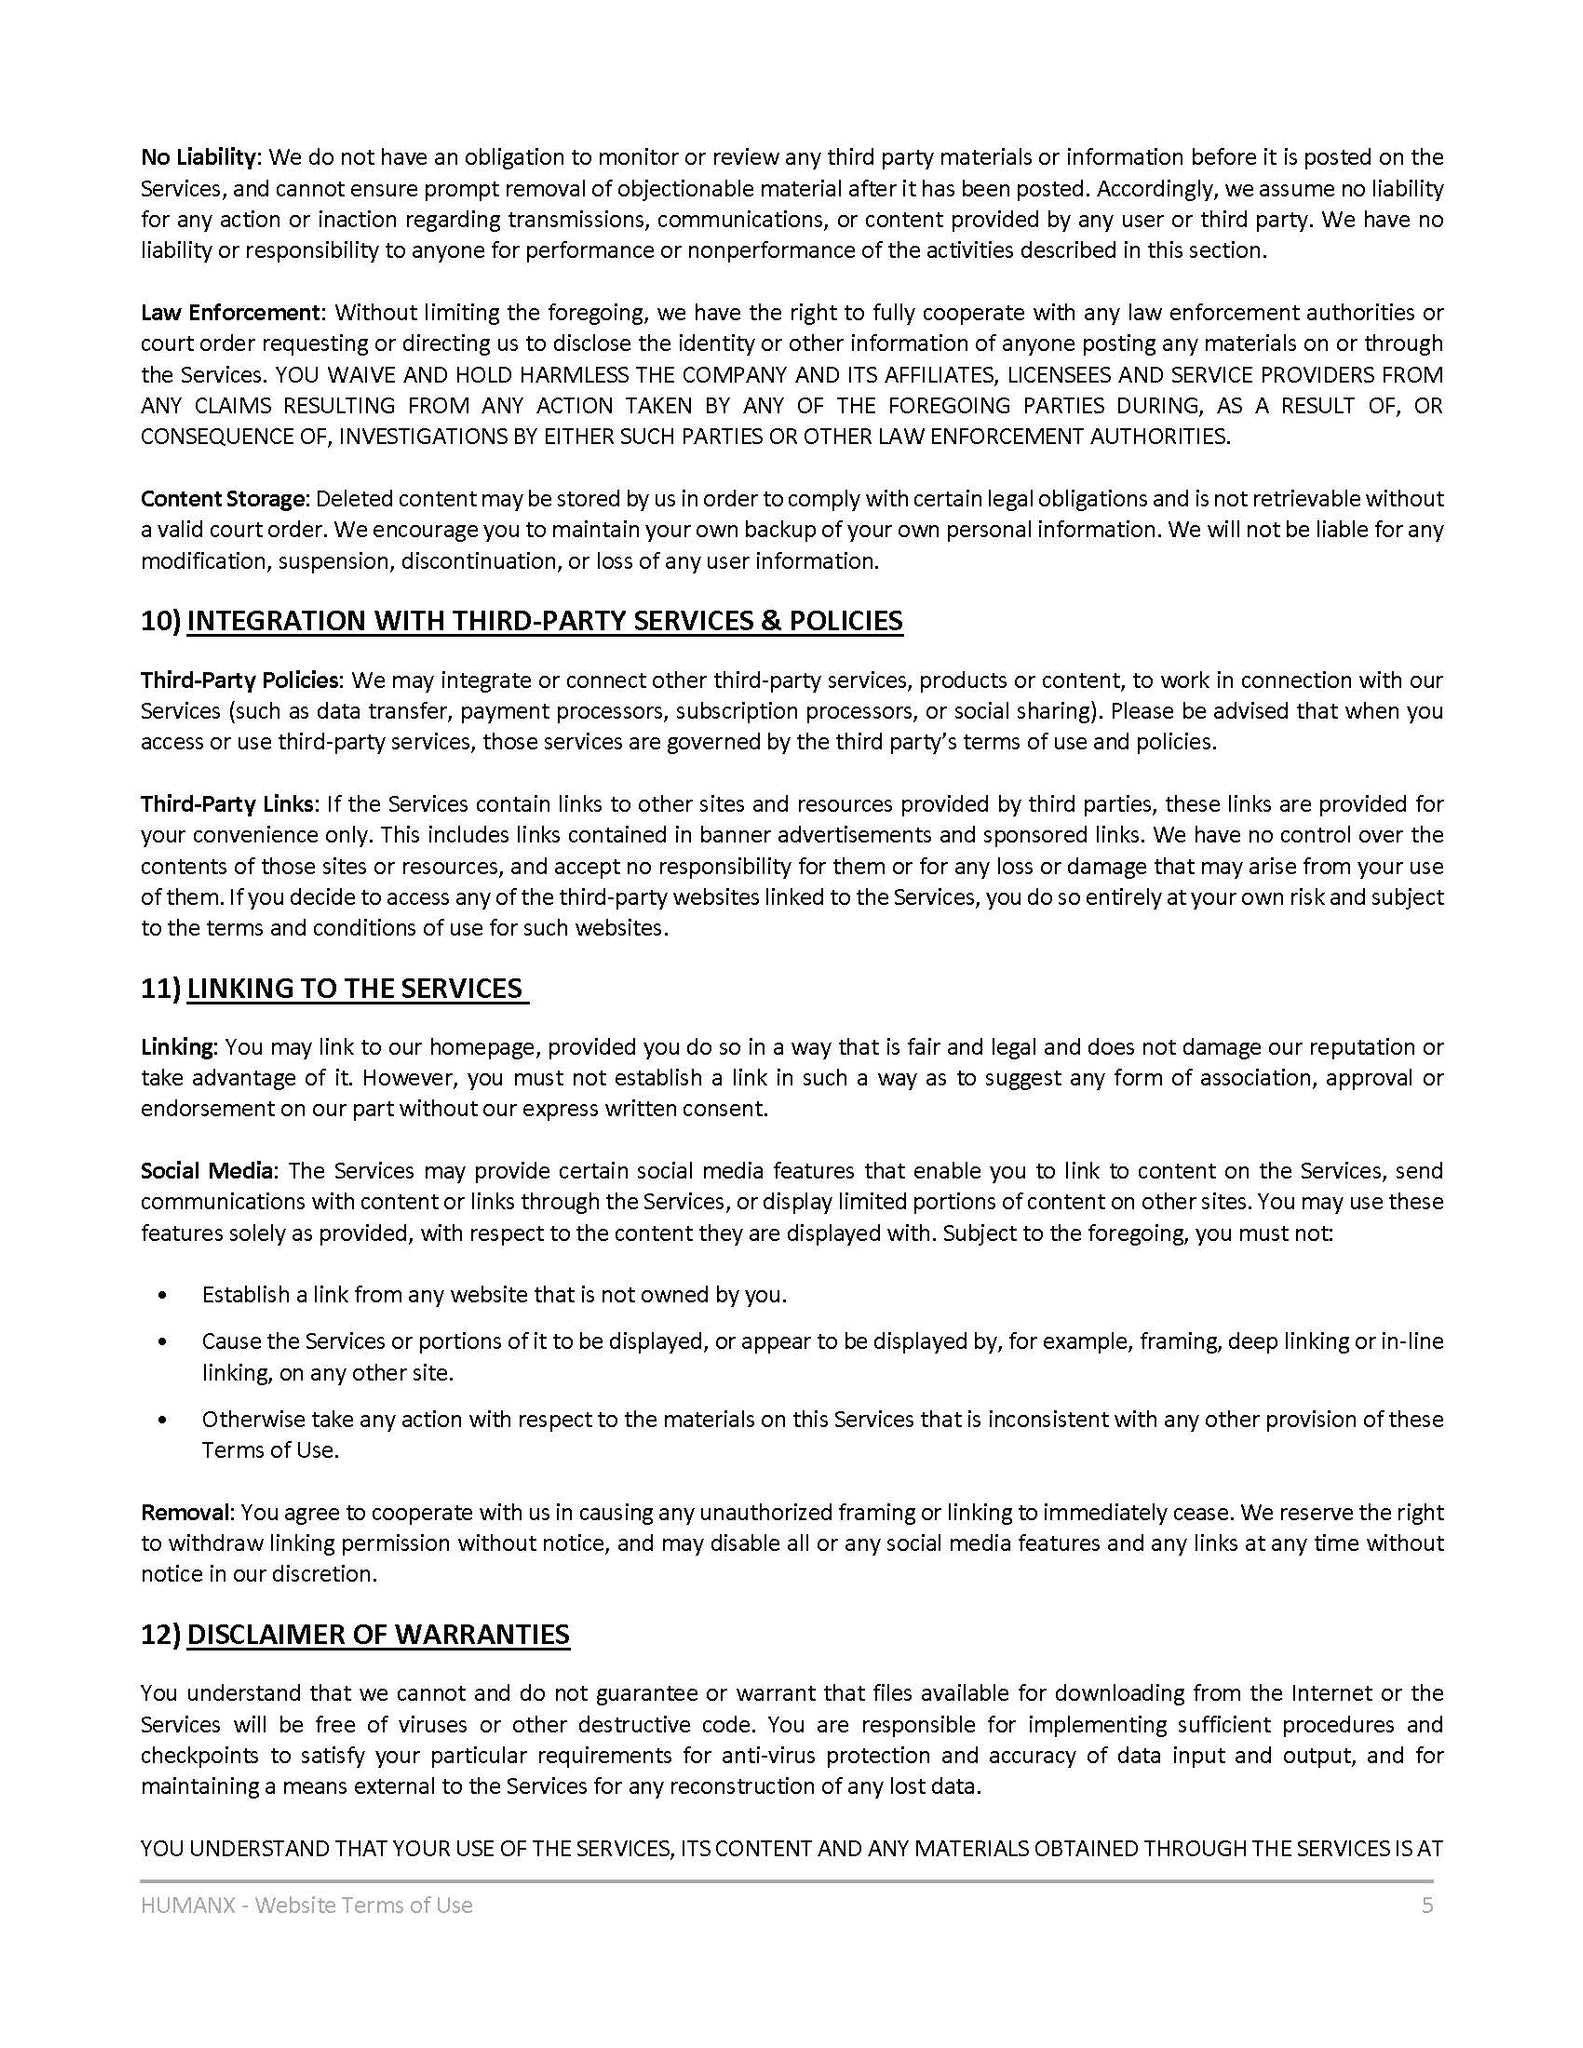 Terms of Use - Page 5